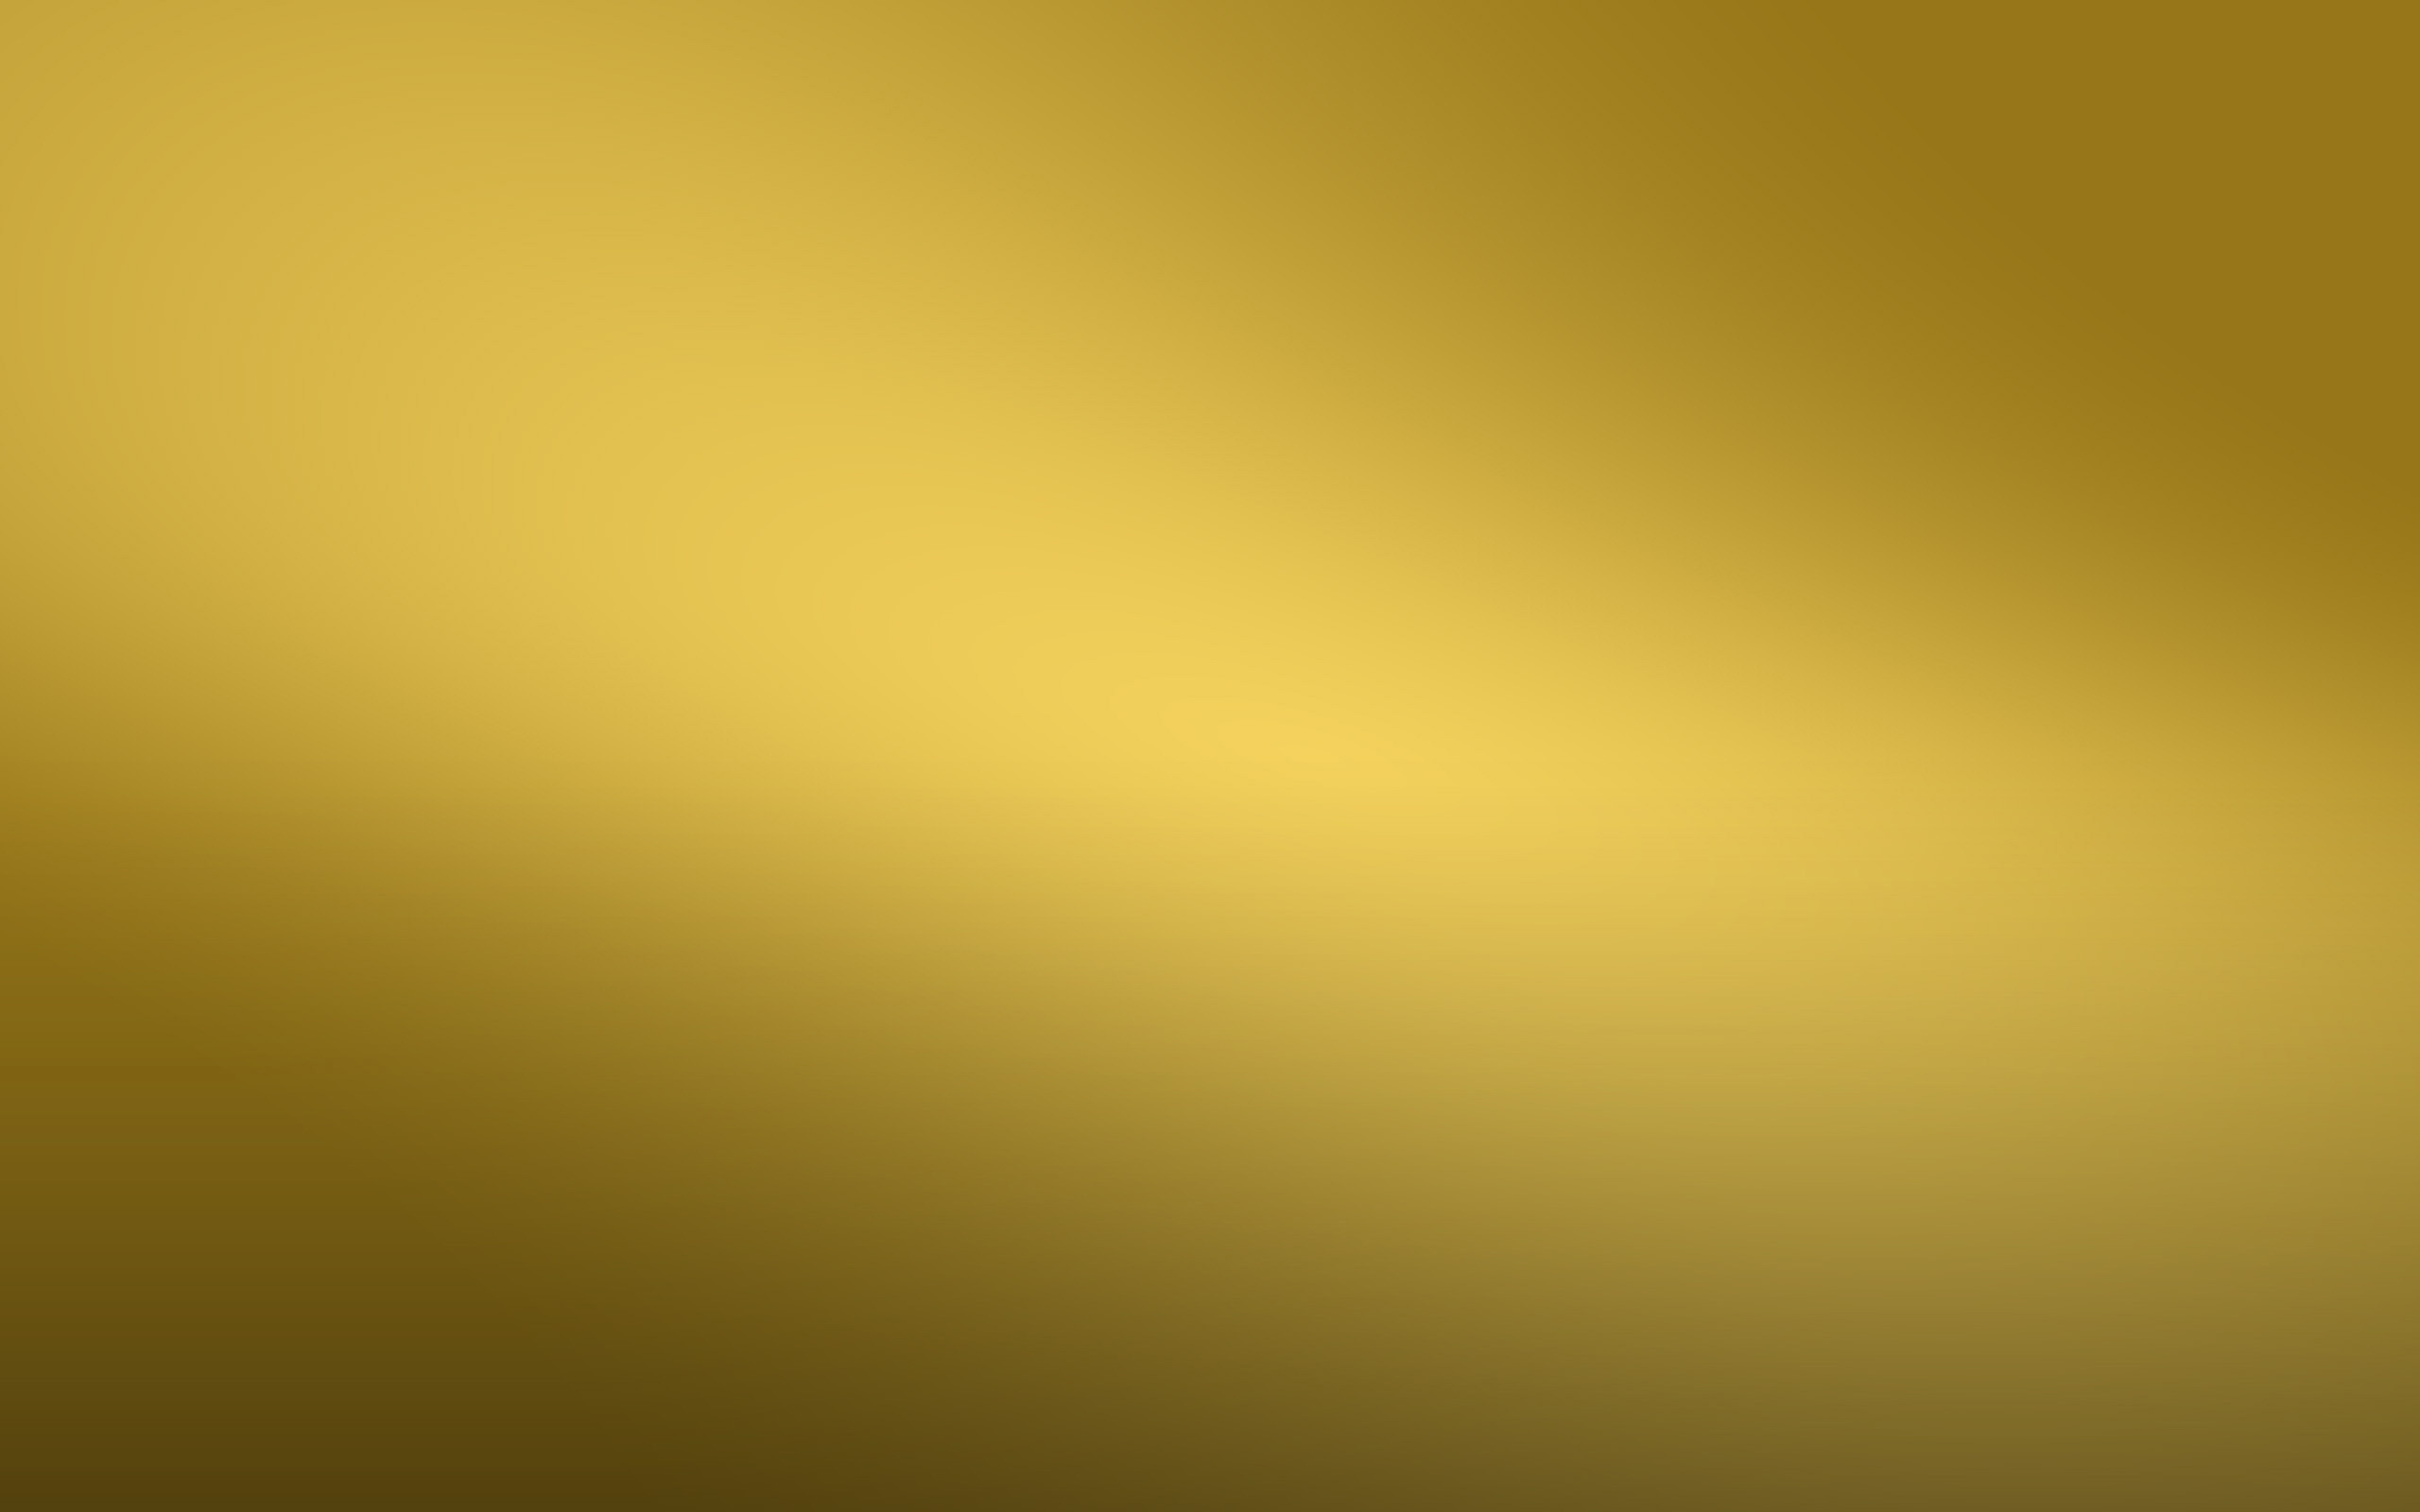 2560x1600 Gold Gradient Wallpaper Background 49494